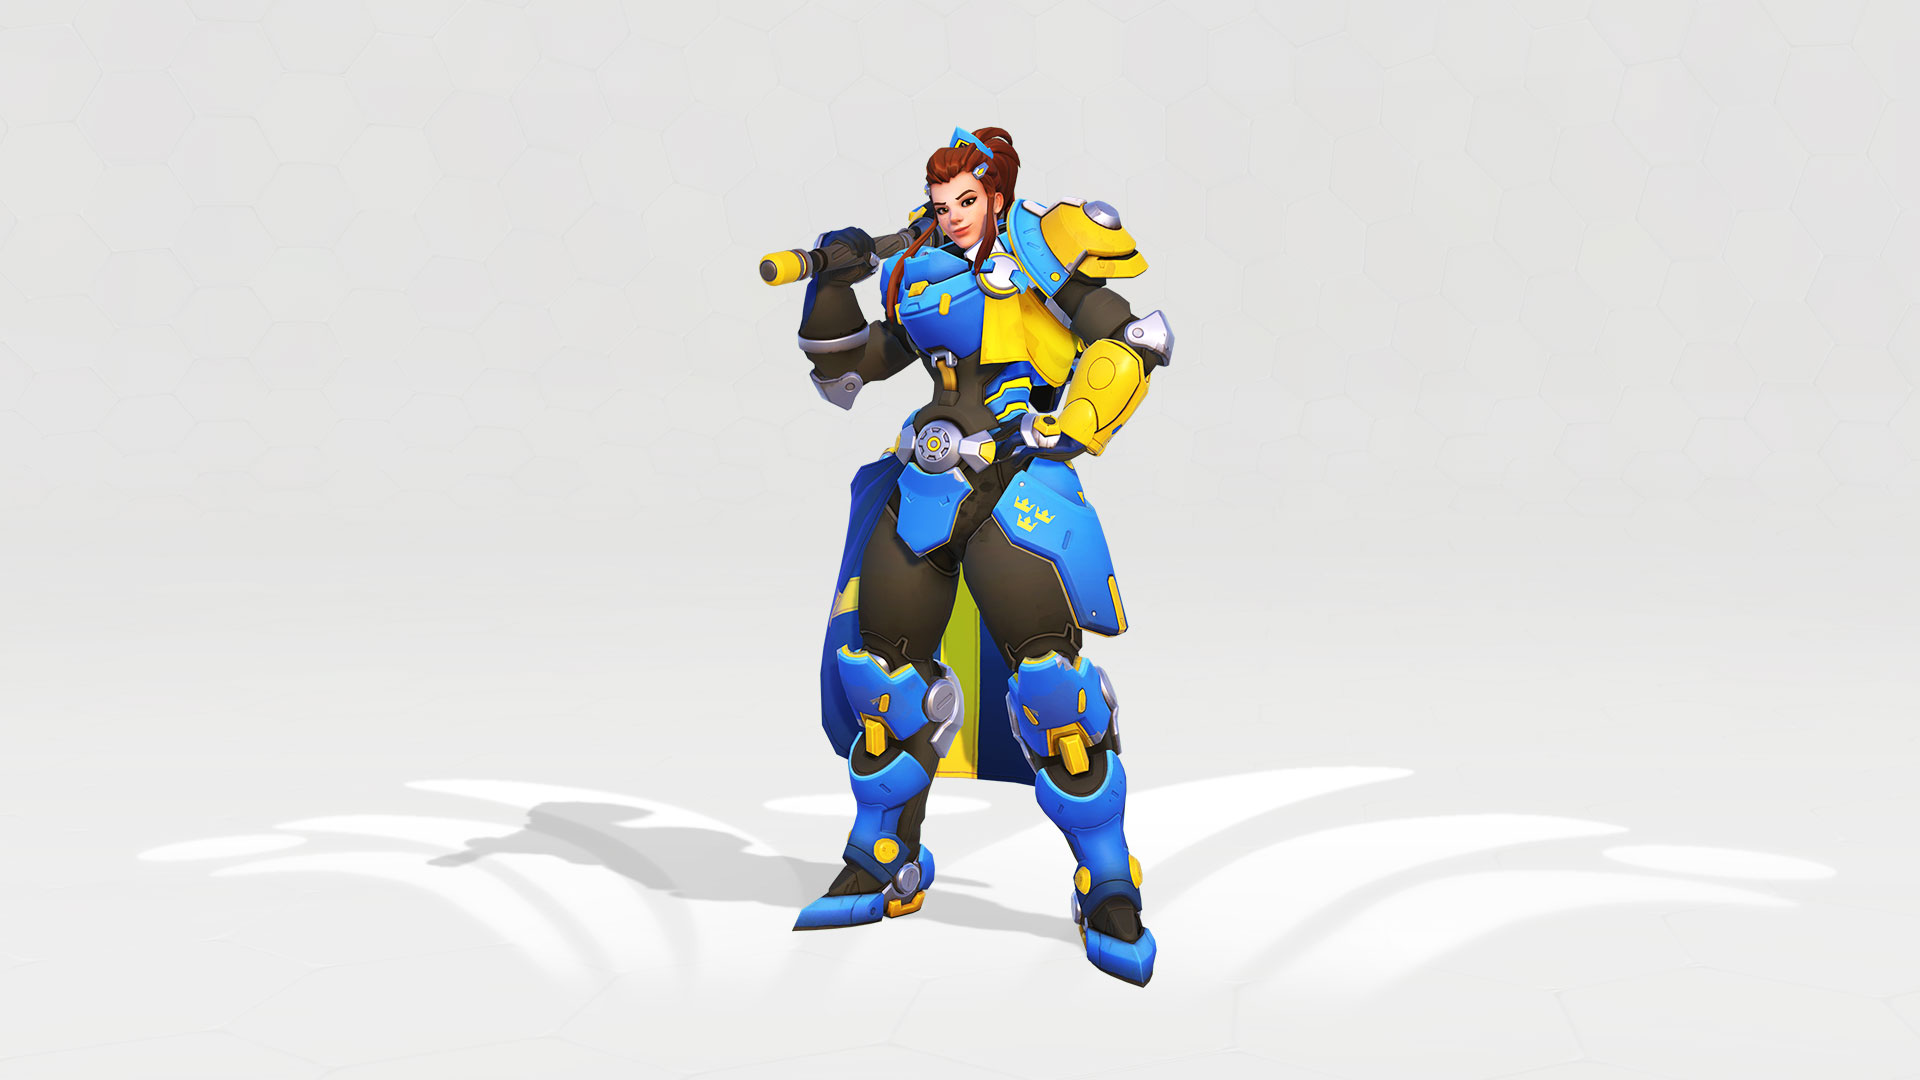 Overwatch Summer Games 2018 Event Is Live Heres A Look At The Skins More